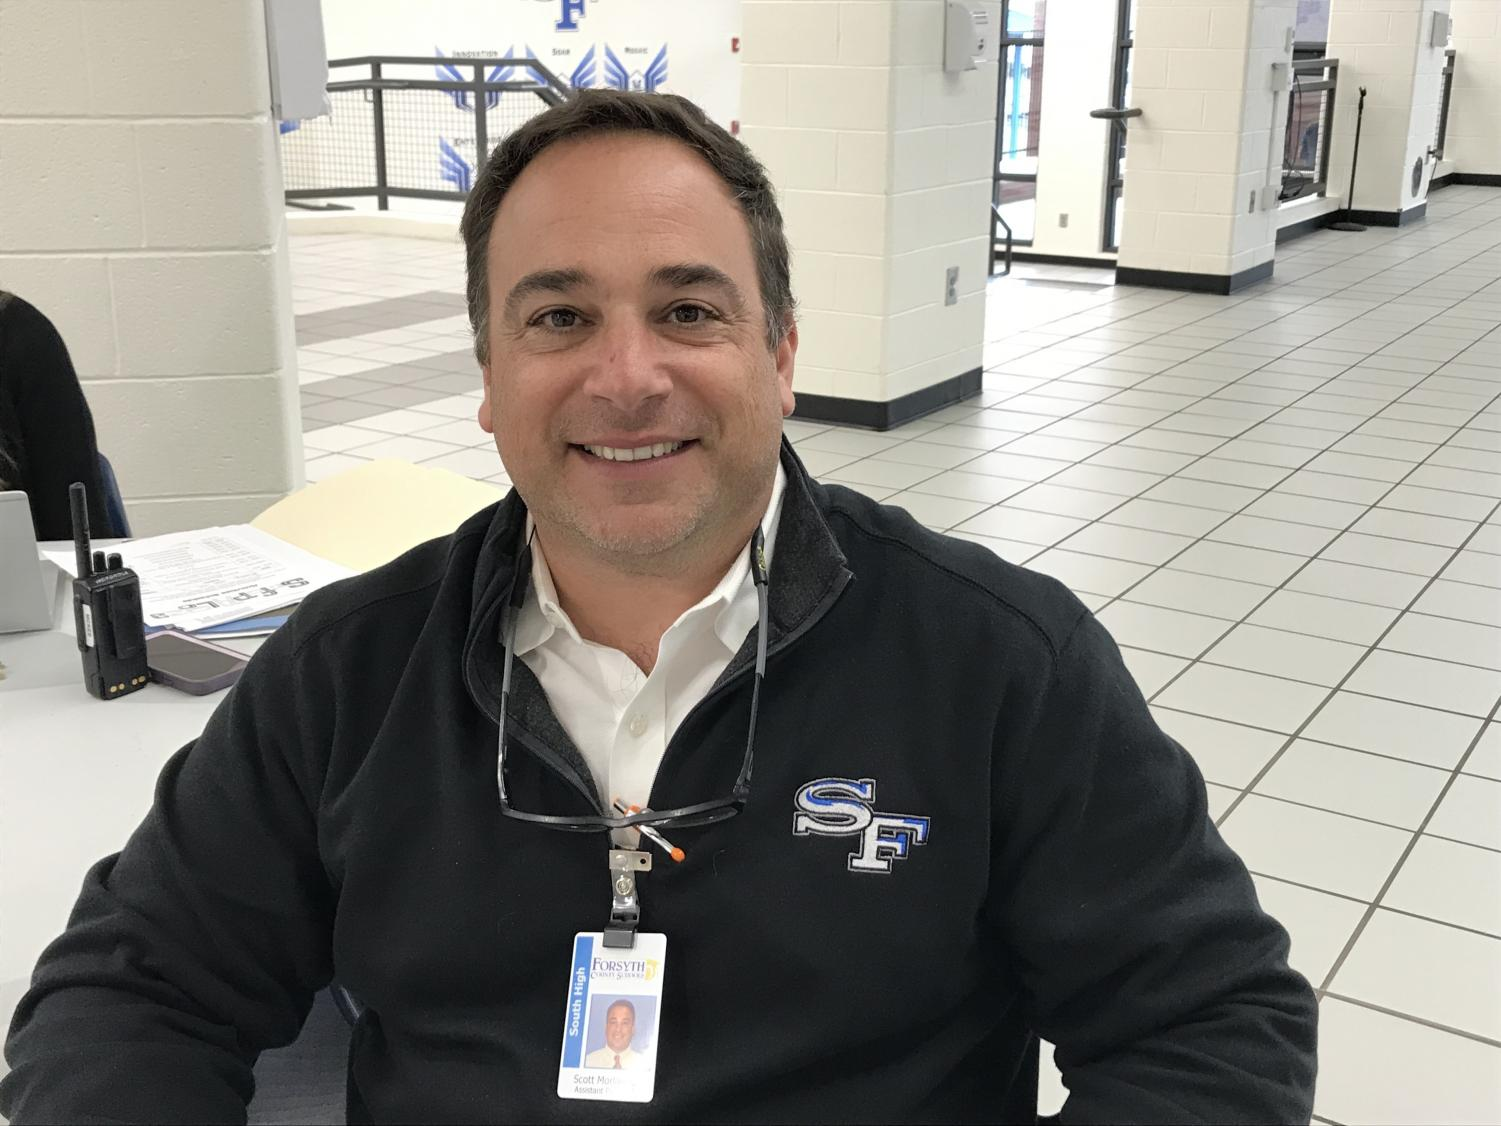 Reflecting on school safety. Mr. Morlanne is the Assistant Principal at South, and is also in charge of school safety plans. He takes his school safety jobs seriously in order to keep students in a safe environment.